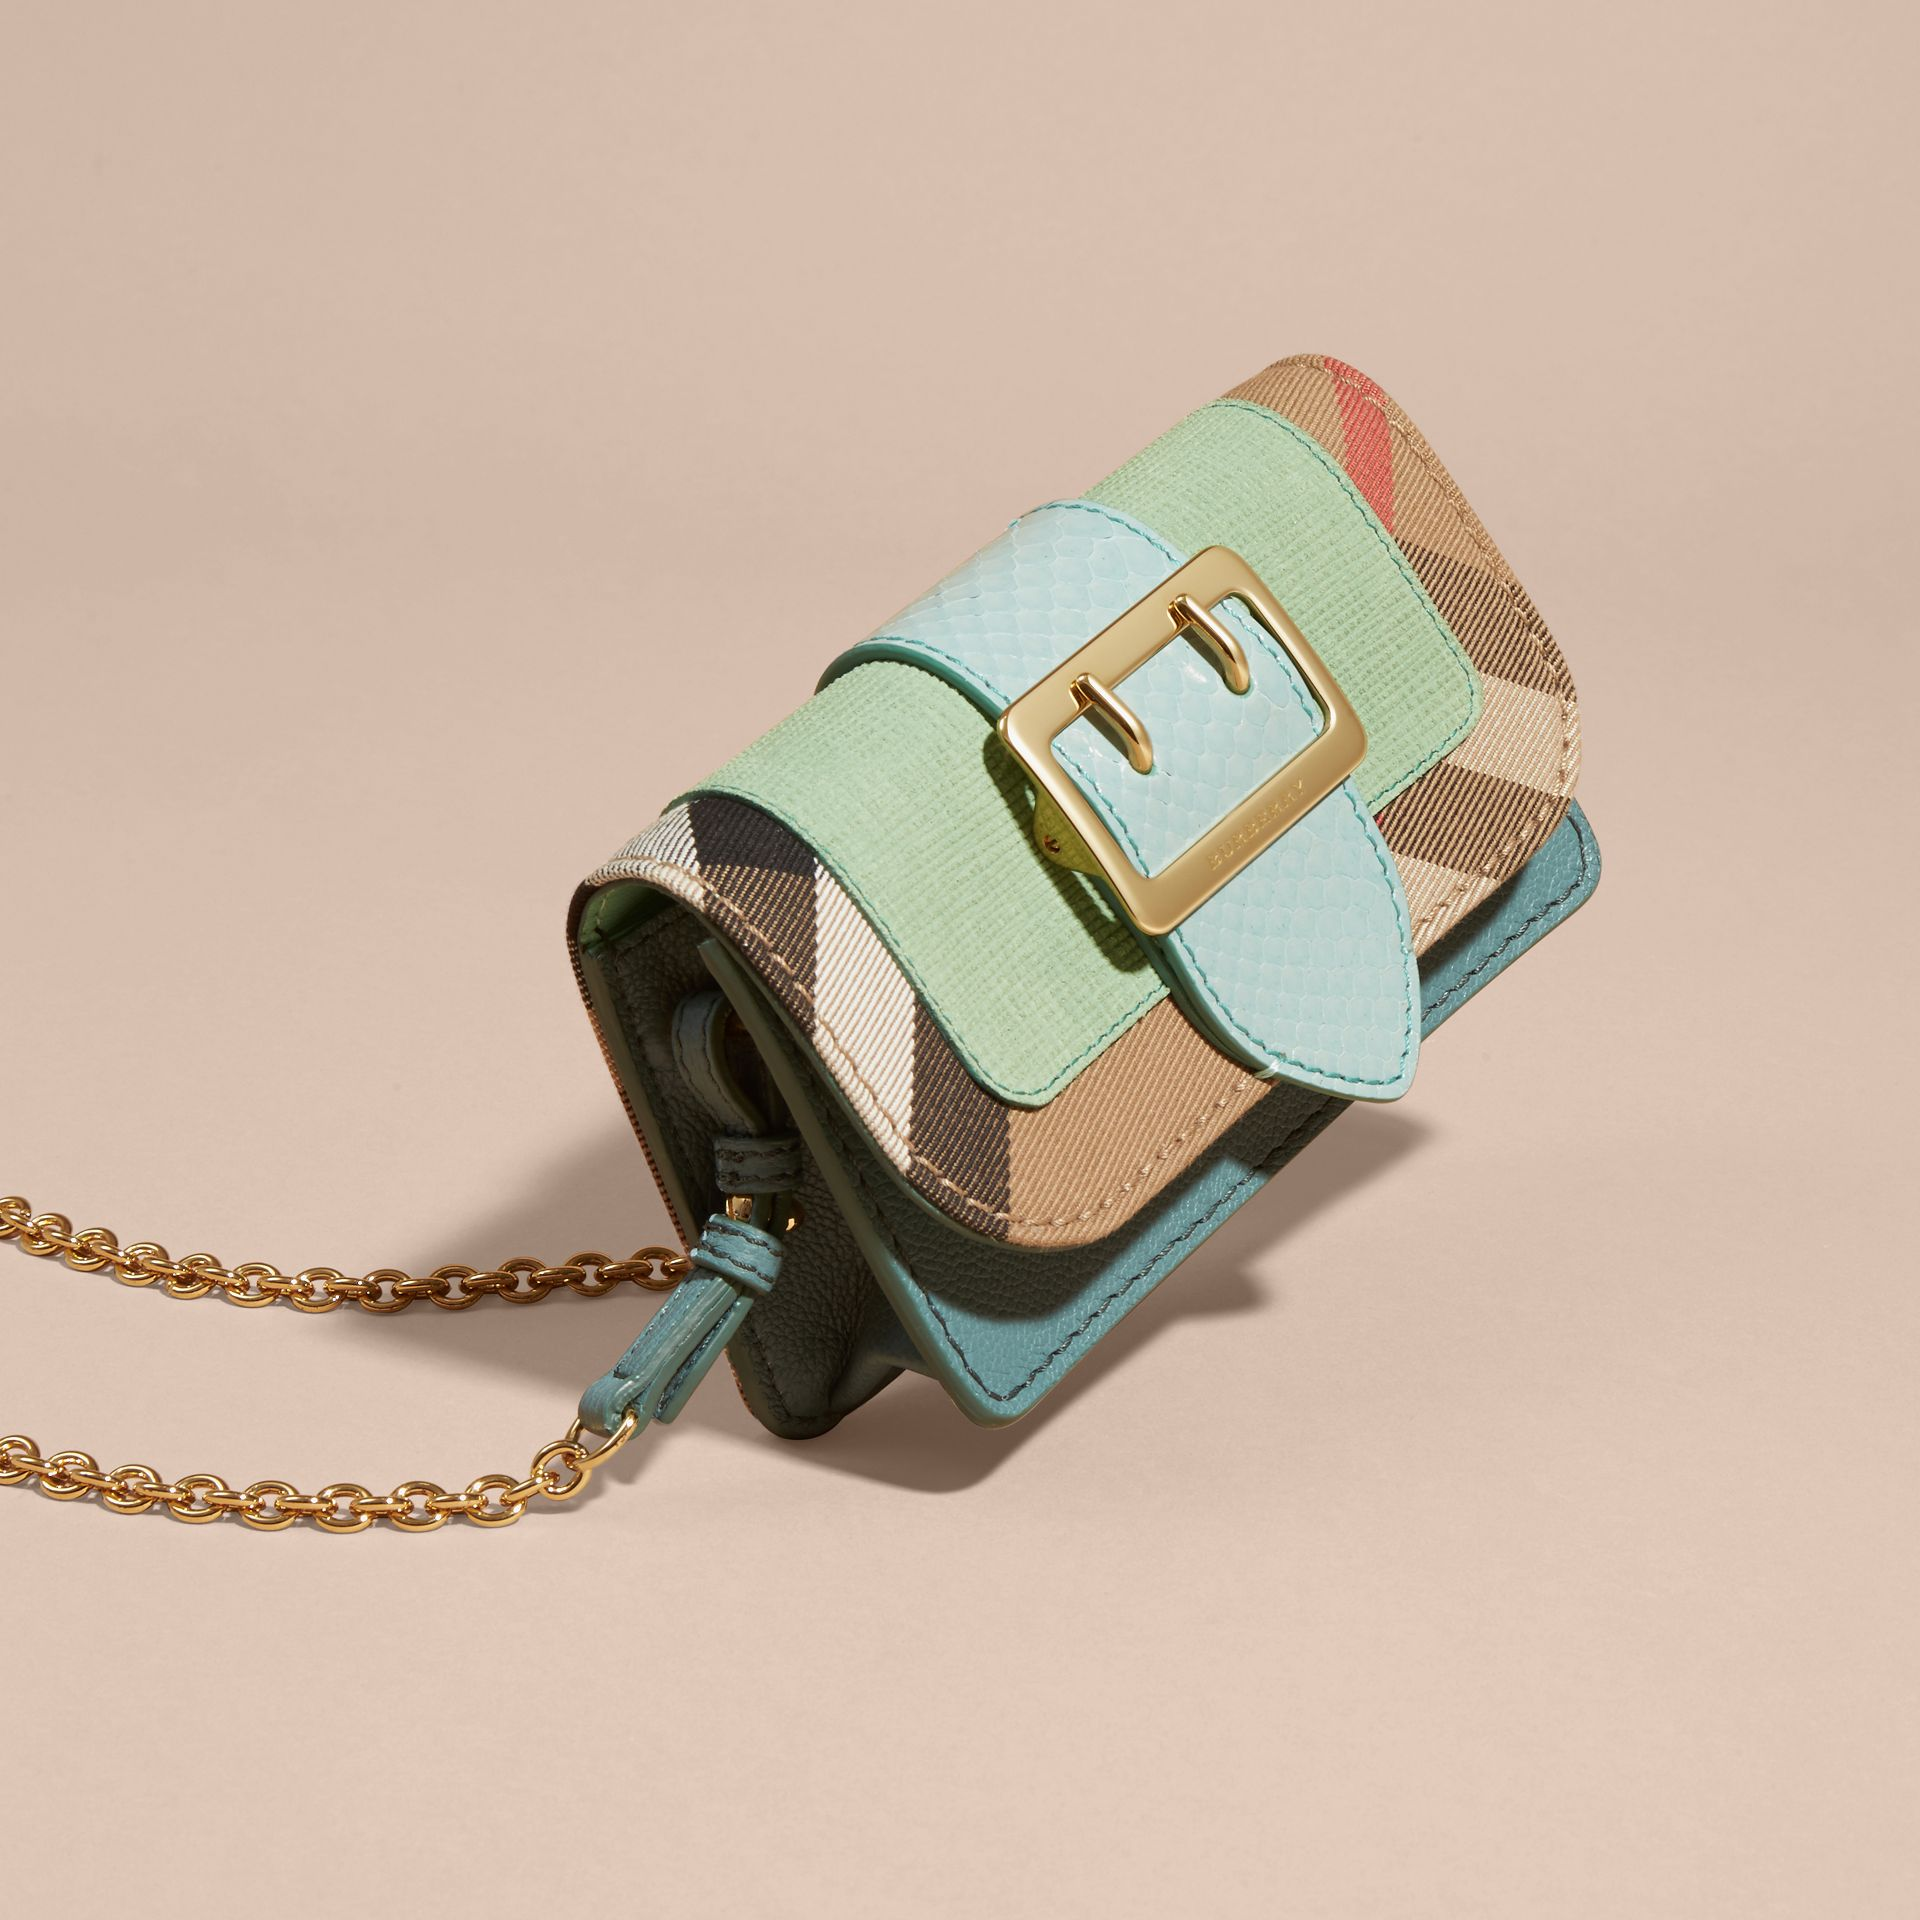 Menta chiaro Borsa The Buckle mini con pelle di serpente e motivo House check - immagine della galleria 7